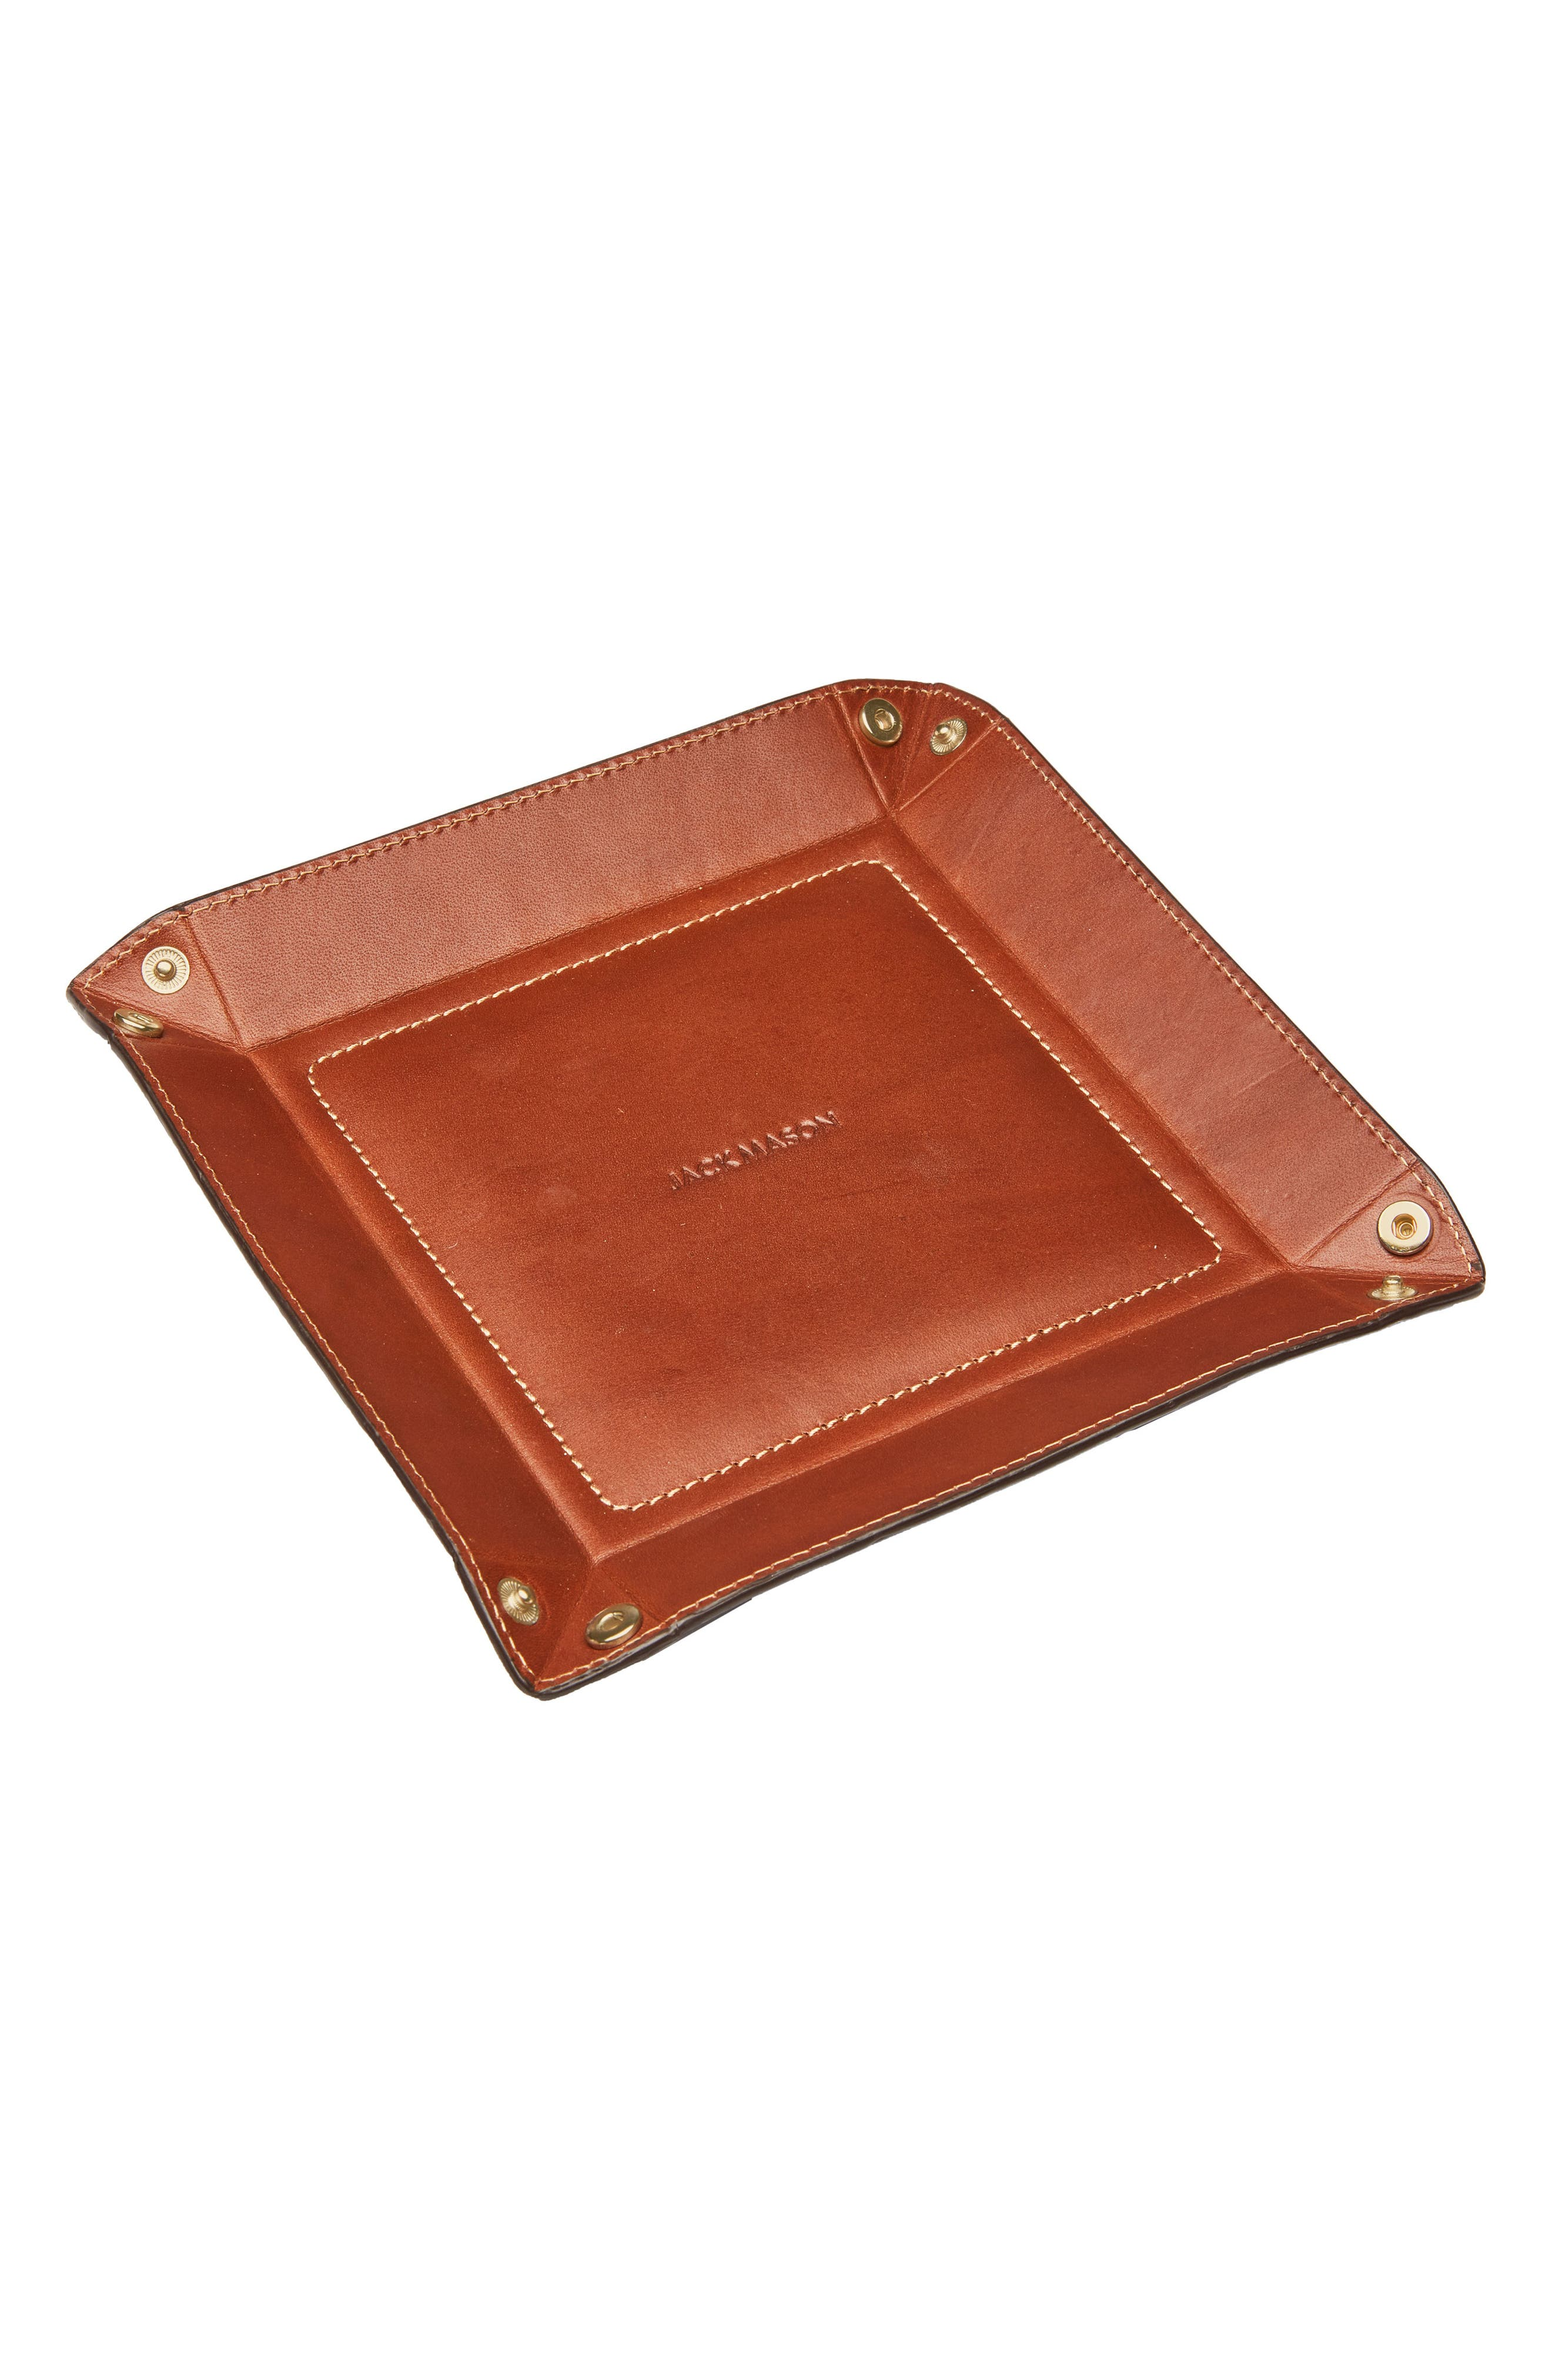 Small Pinched Leather Valet Tray,                             Alternate thumbnail 2, color,                             230